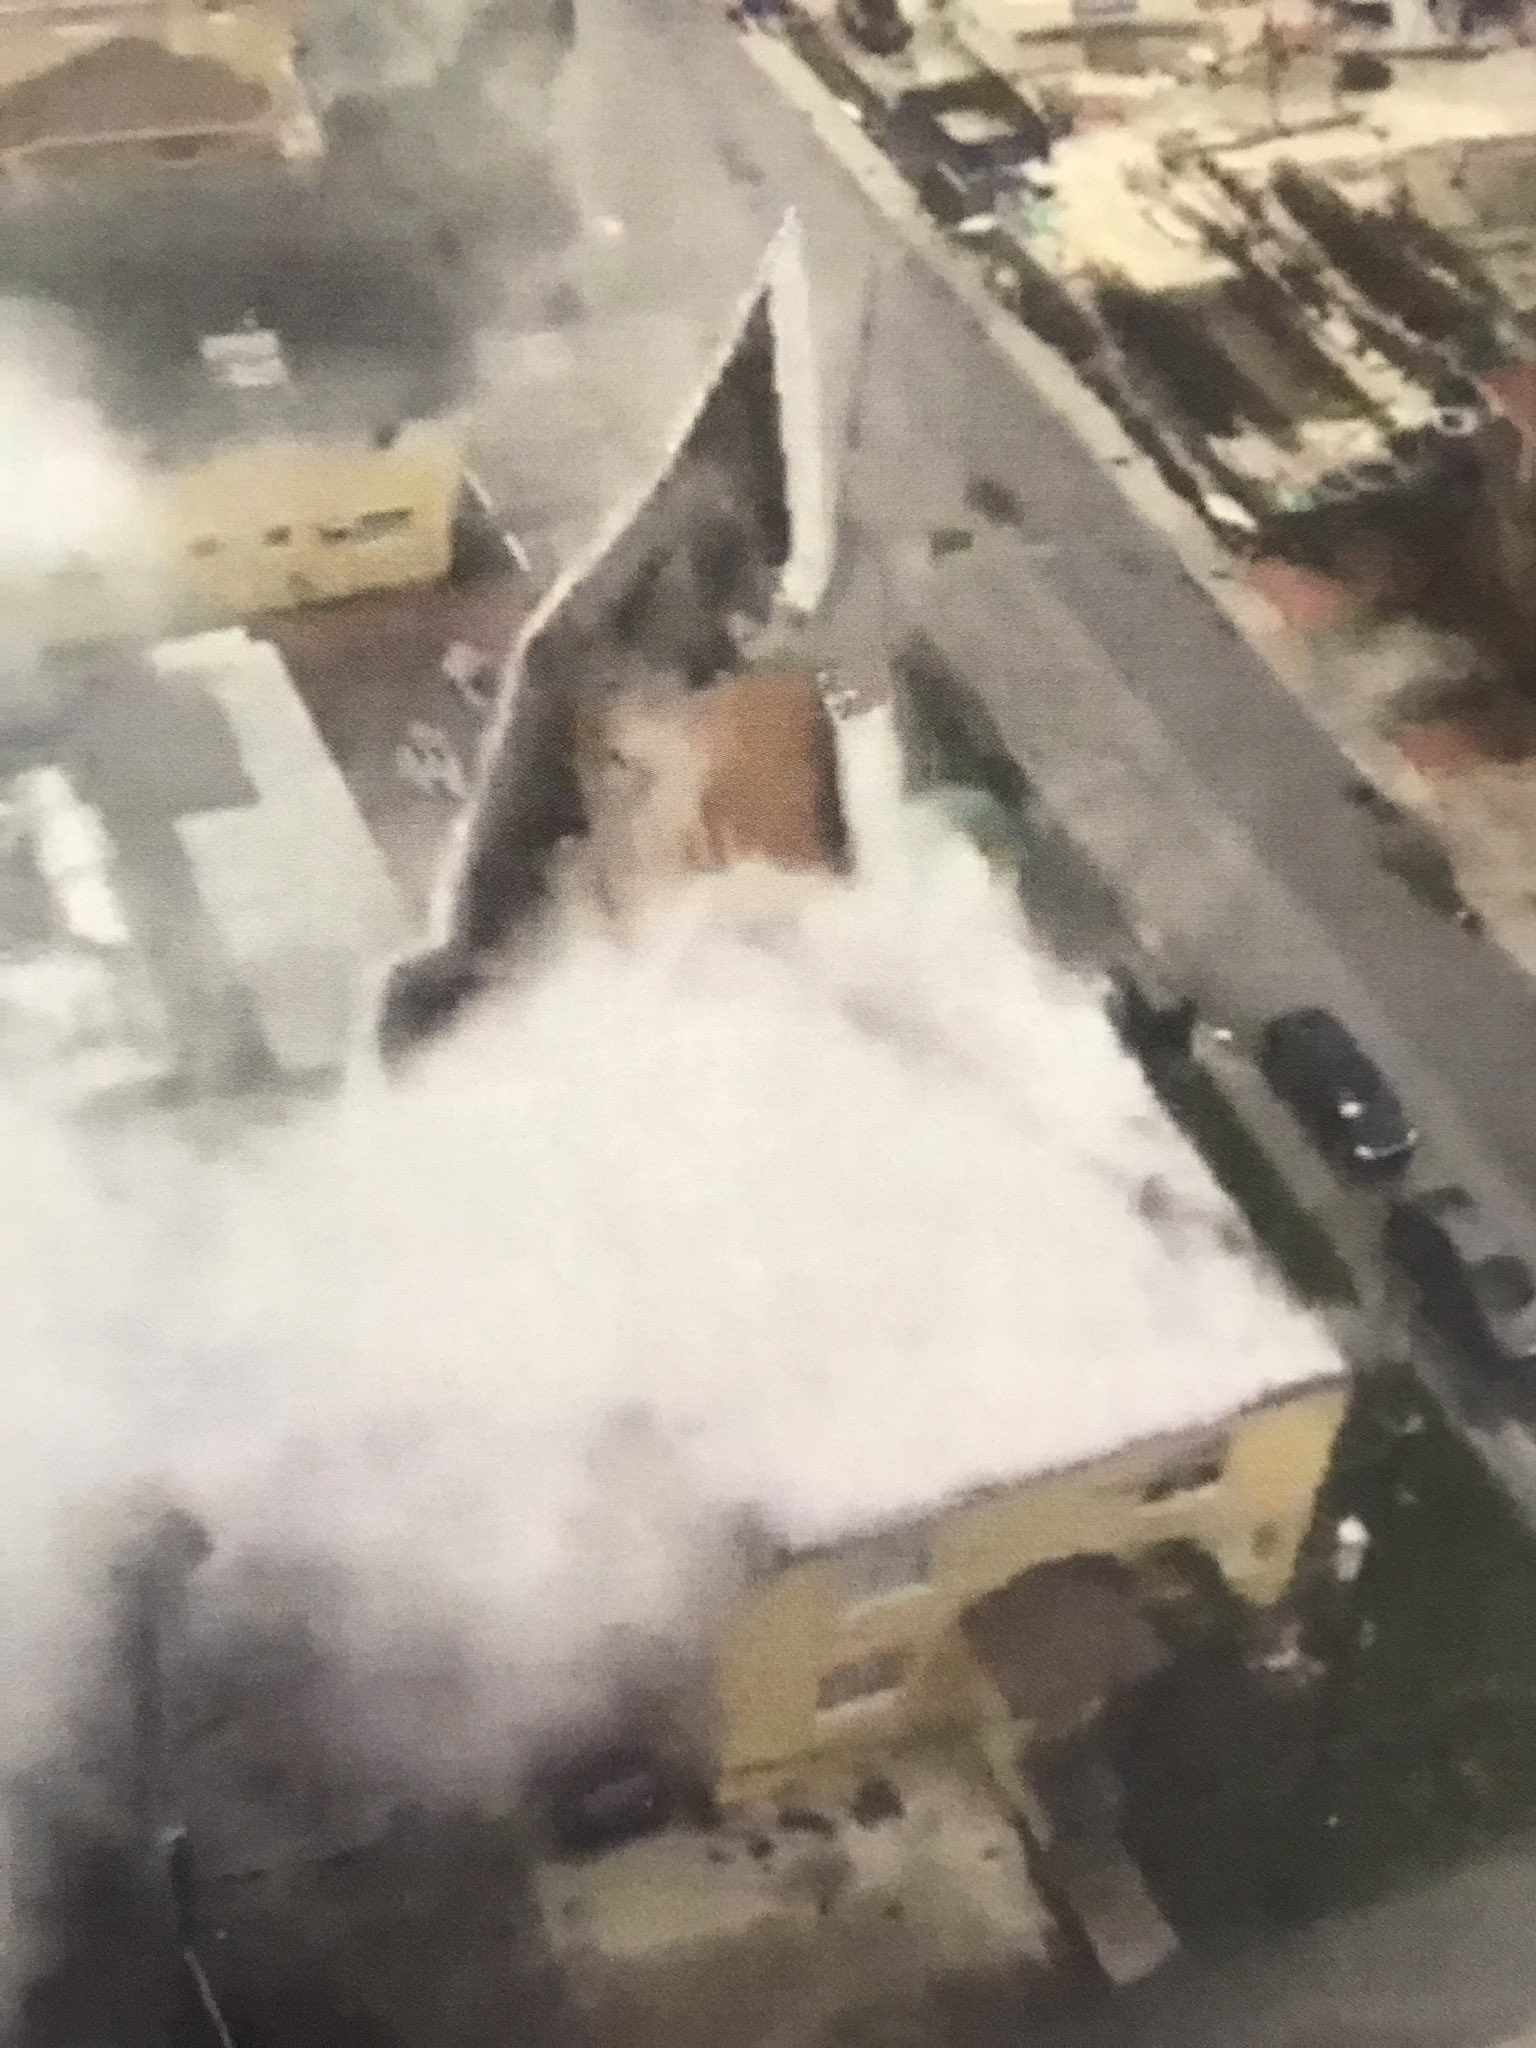 "<div class=""meta image-caption""><div class=""origin-logo origin-image none""><span>none</span></div><span class=""caption-text"">''Using satellite before pictures @CityofMiamiFire was able to confirm a roof peeled off a two story apt Bldg at 2642 NE 5th Ave in #Miami,'' the city posted on Sunday. (CityofMiami/Twitter)</span></div>"